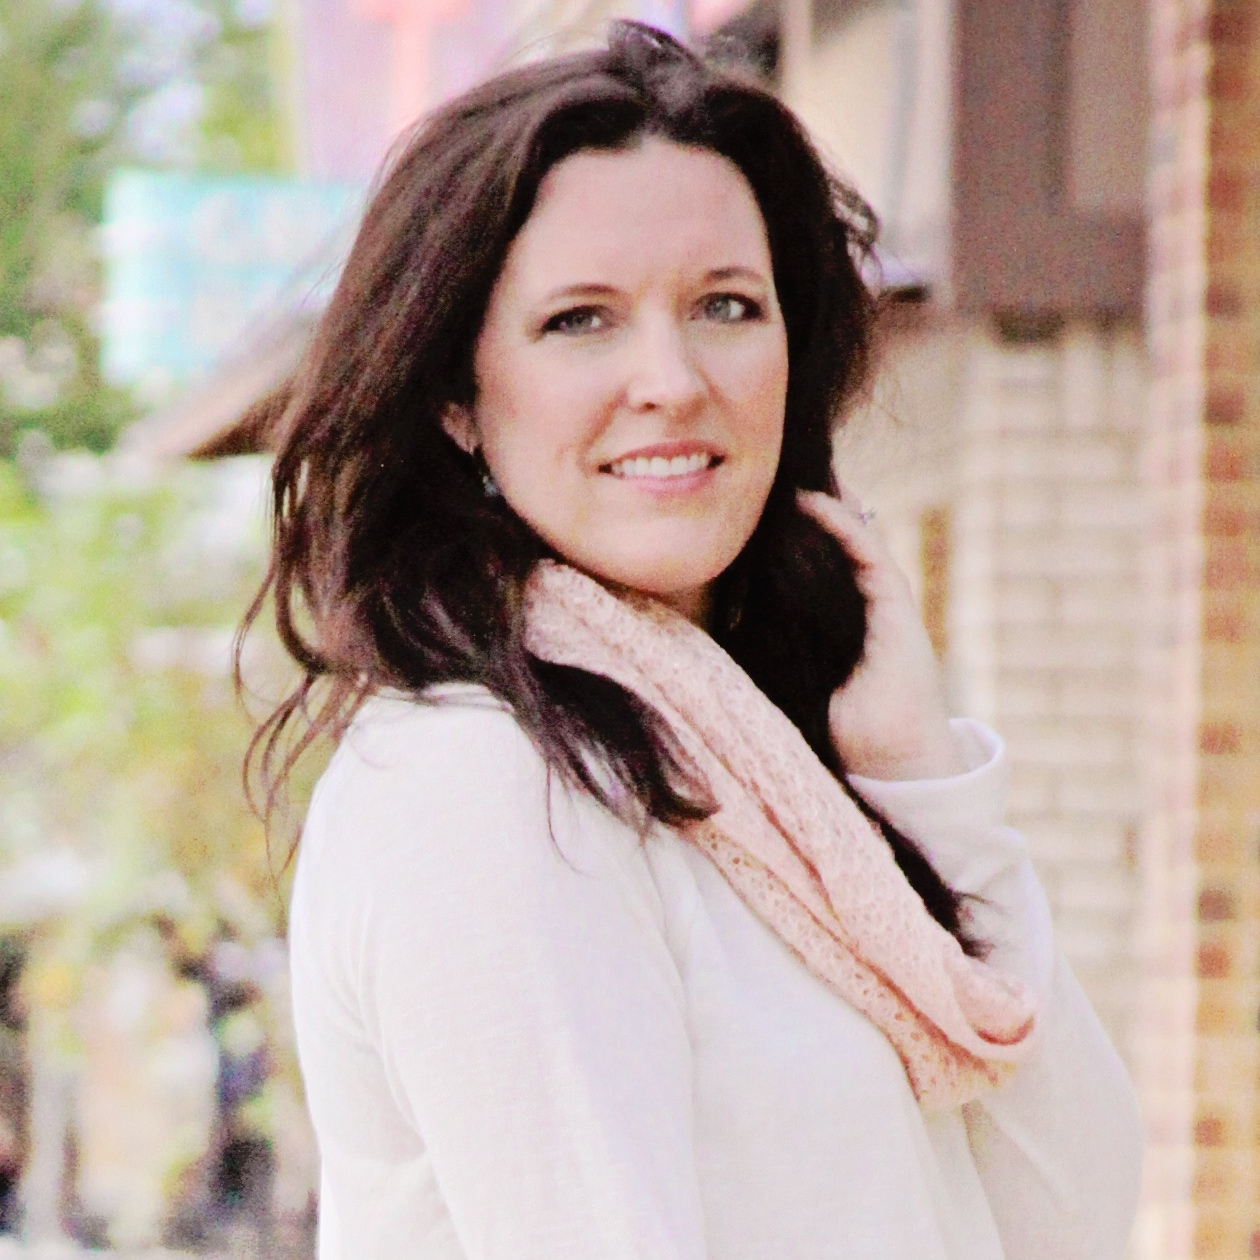 Writer - Erica BoutwellHer passion is leading worship, pouring into the next generation of worship leaders, and discipling women.